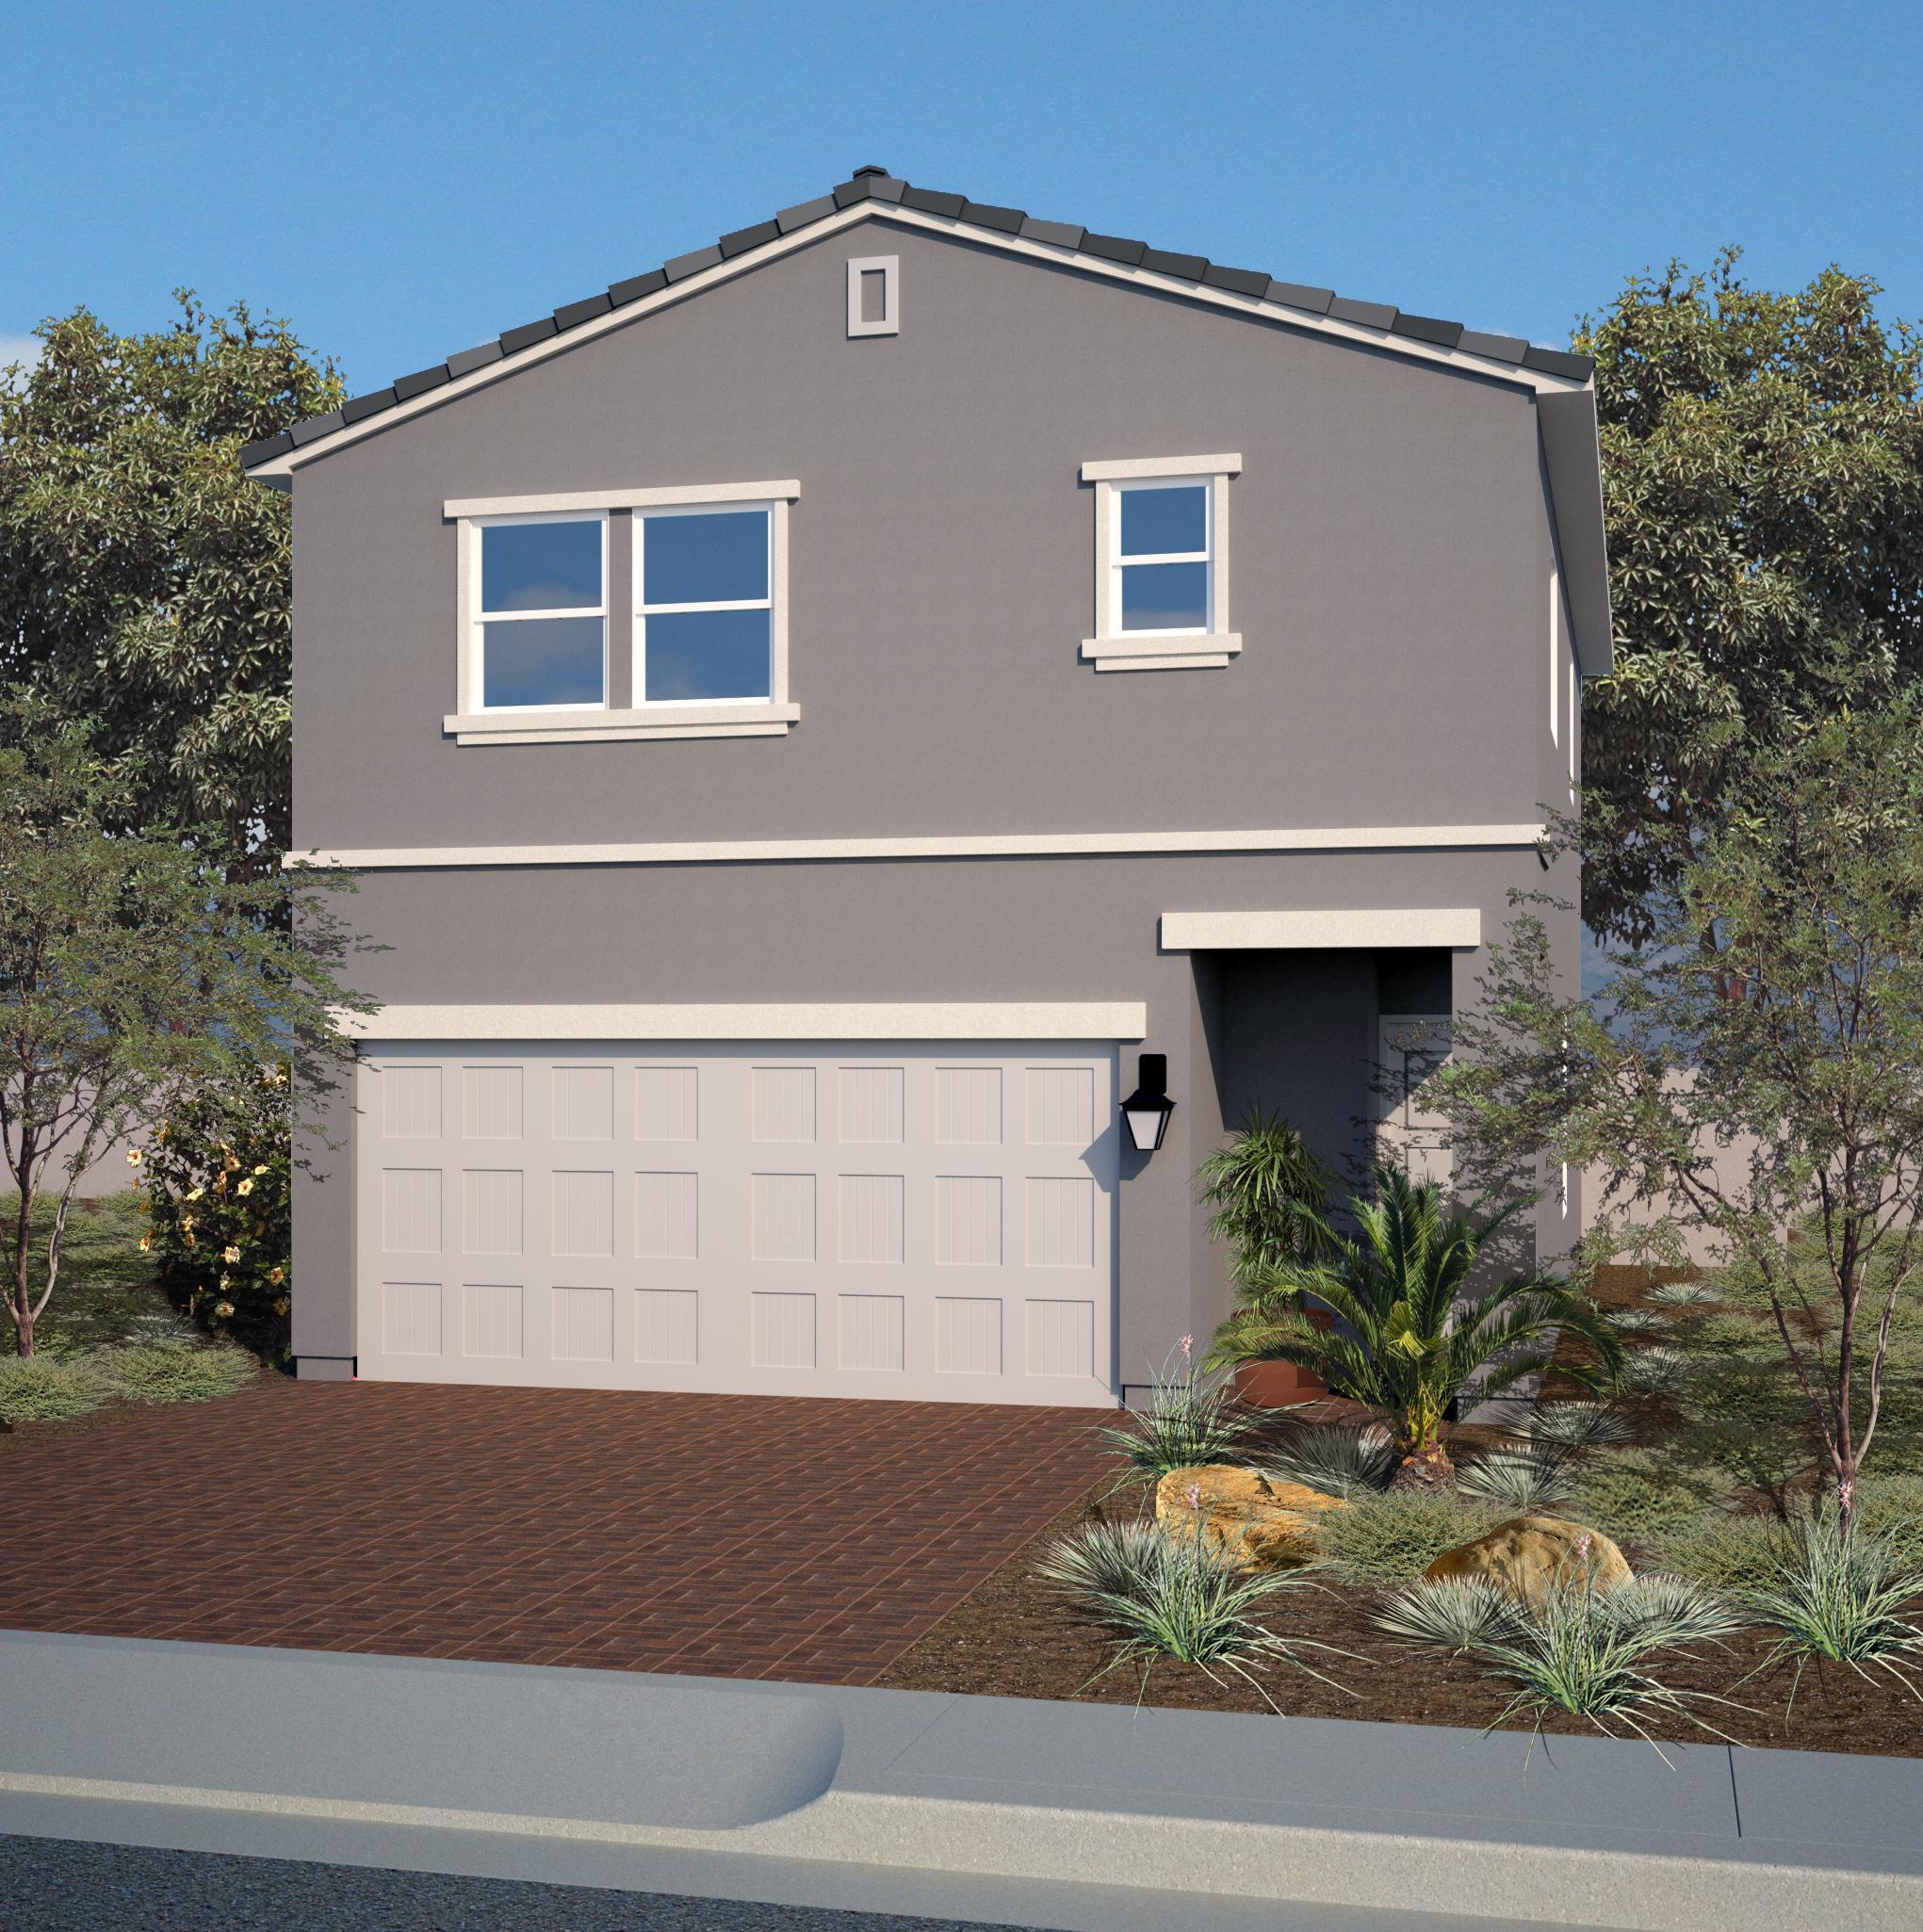 Exterior featured in the Residence 1339 By Harmony Homes - Las Vegas in Las Vegas, NV